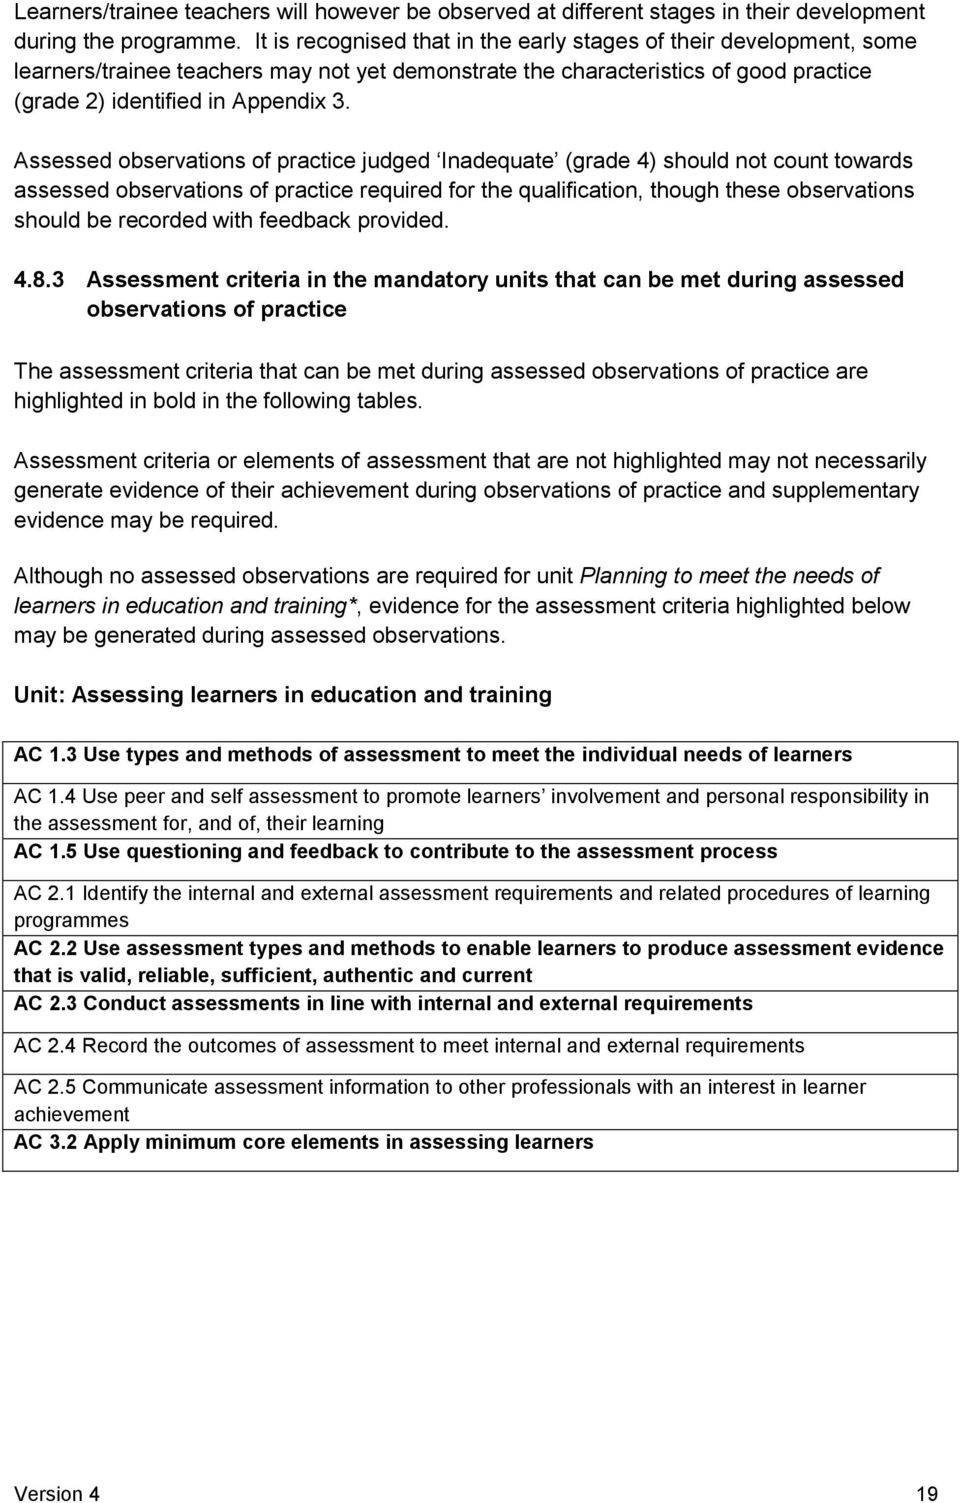 Assessed observations of practice judged Inadequate (grade 4) should not count towards assessed observations of practice required for the qualification, though these observations should be recorded